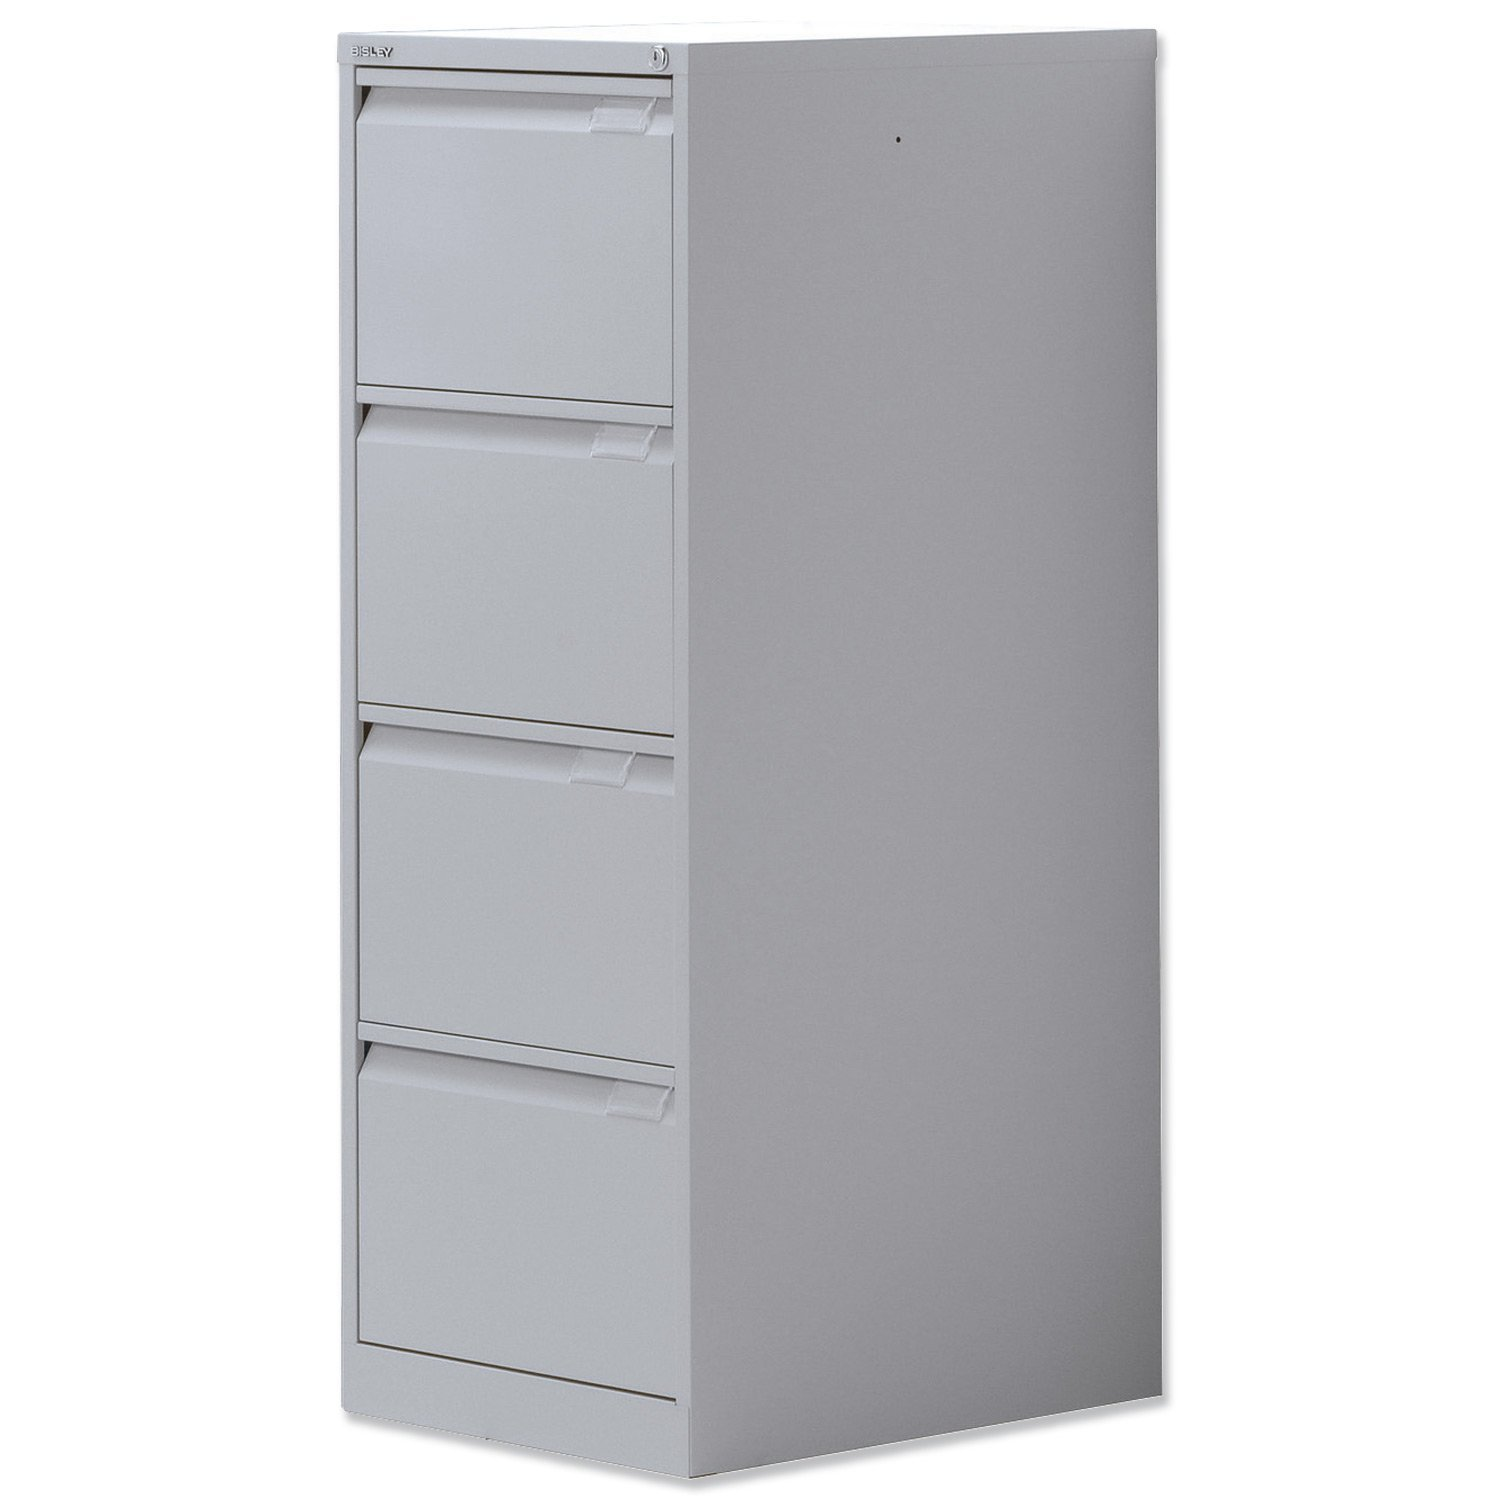 Brilliant Bisley File Cabinet for Best File Storage Ideas: Bisley File Cabinet | 2 Drawer White File Cabinet | Bisley File Cabinets